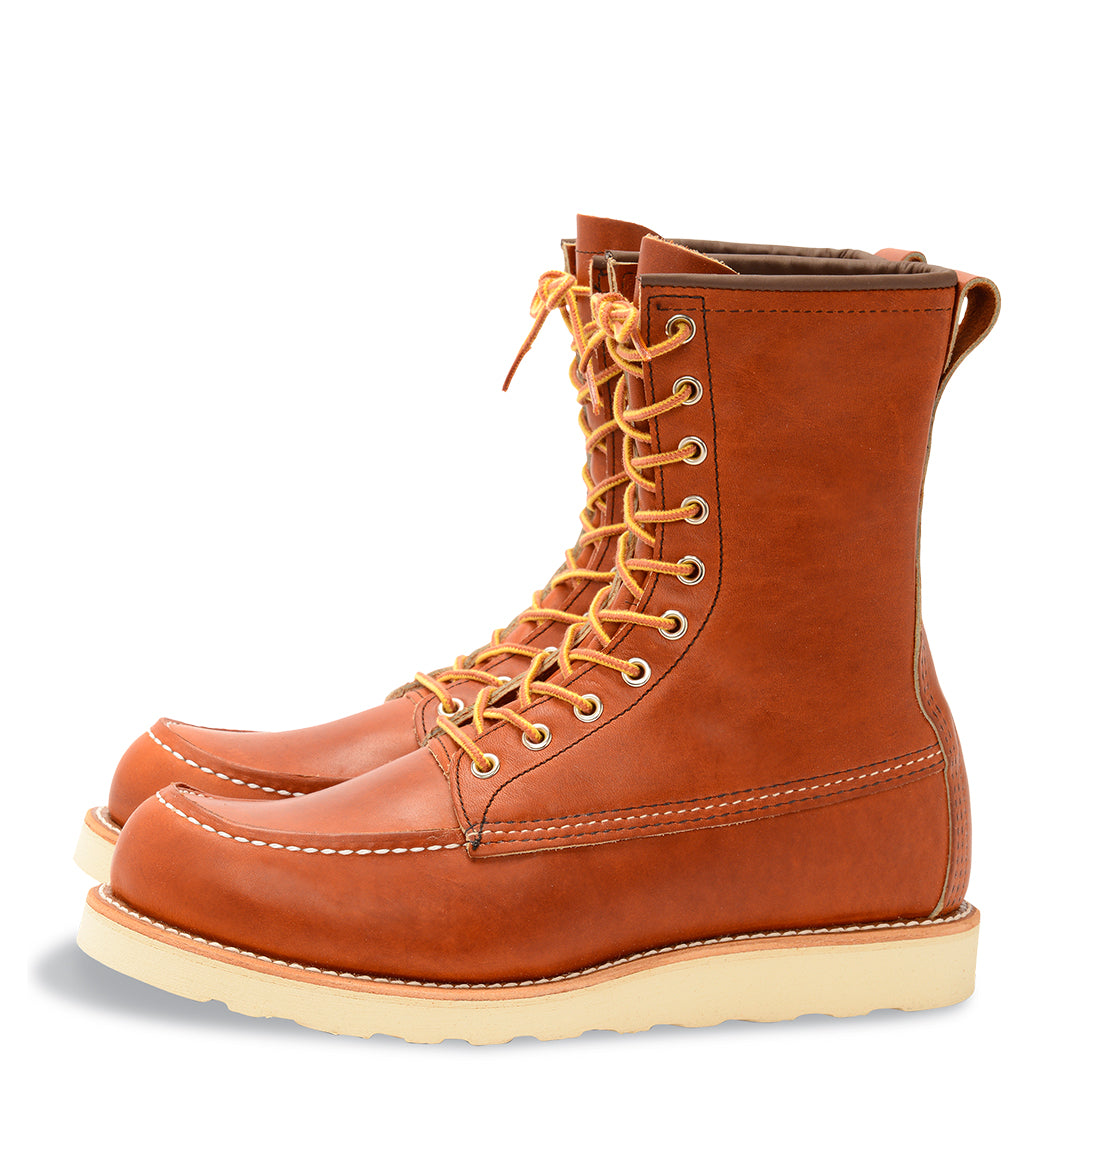 Red wing boots leicester